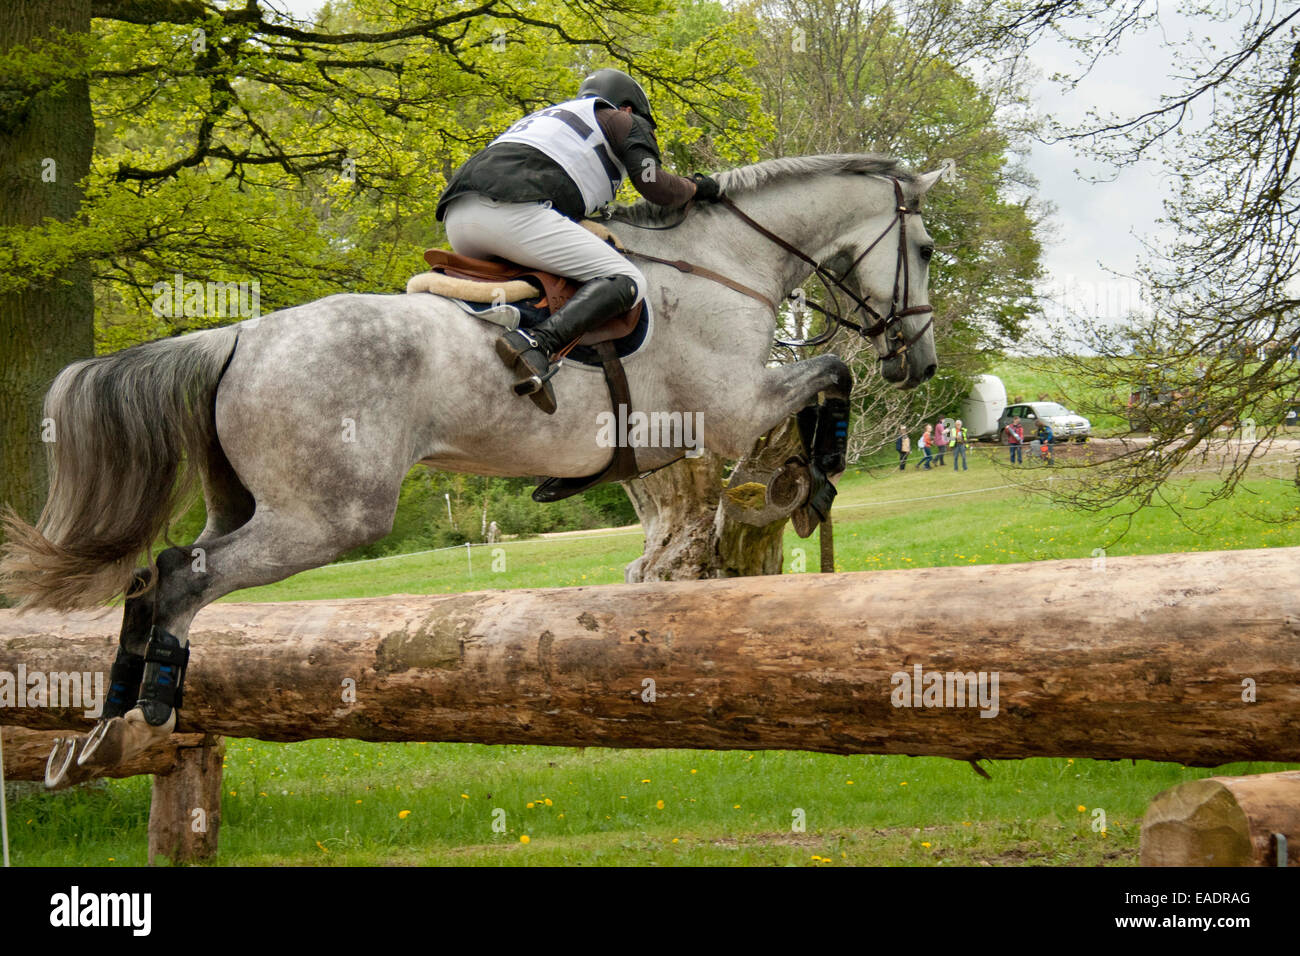 Jumping horse Stock Photo